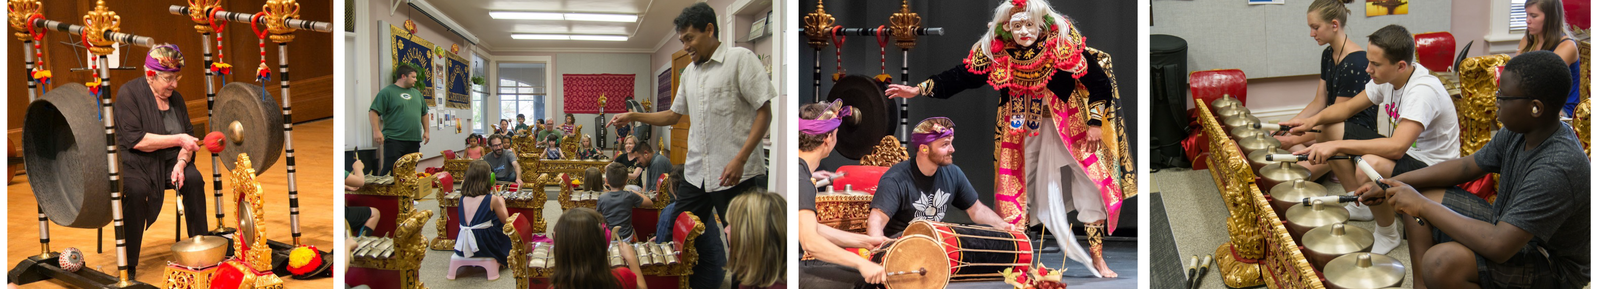 an elderly woman hits the gong with a mallet; a smiling teacher talks to the class of children and parents/guardians; a gamelan performance featuring drummers and a man dressed in traditional clothing and a mask; teenage students practicing gamelan